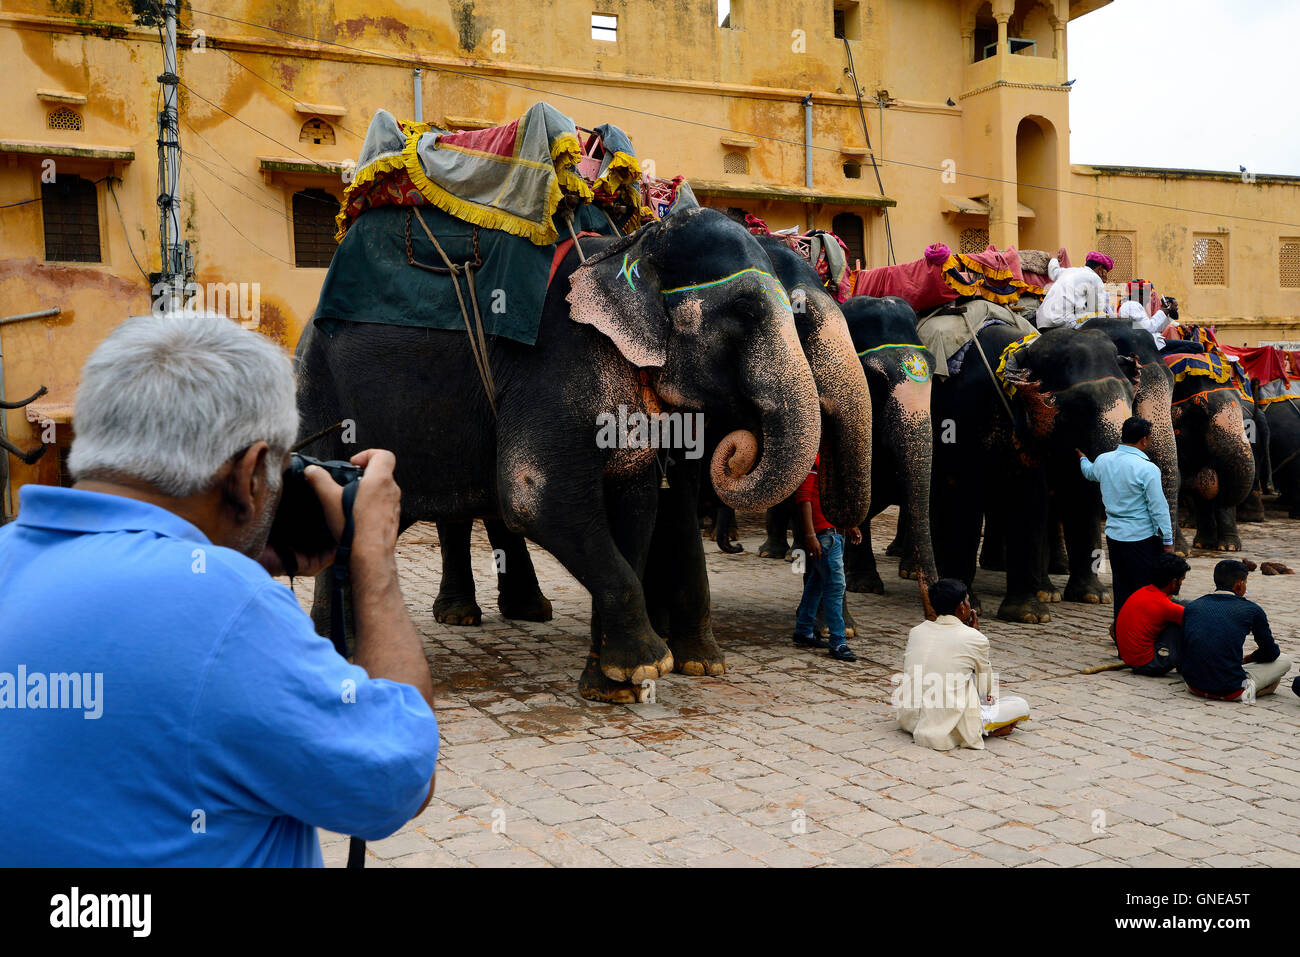 Man capturing photograph of Elephants in Amber fort, Jaipur, Rajasthan, India - Stock Image